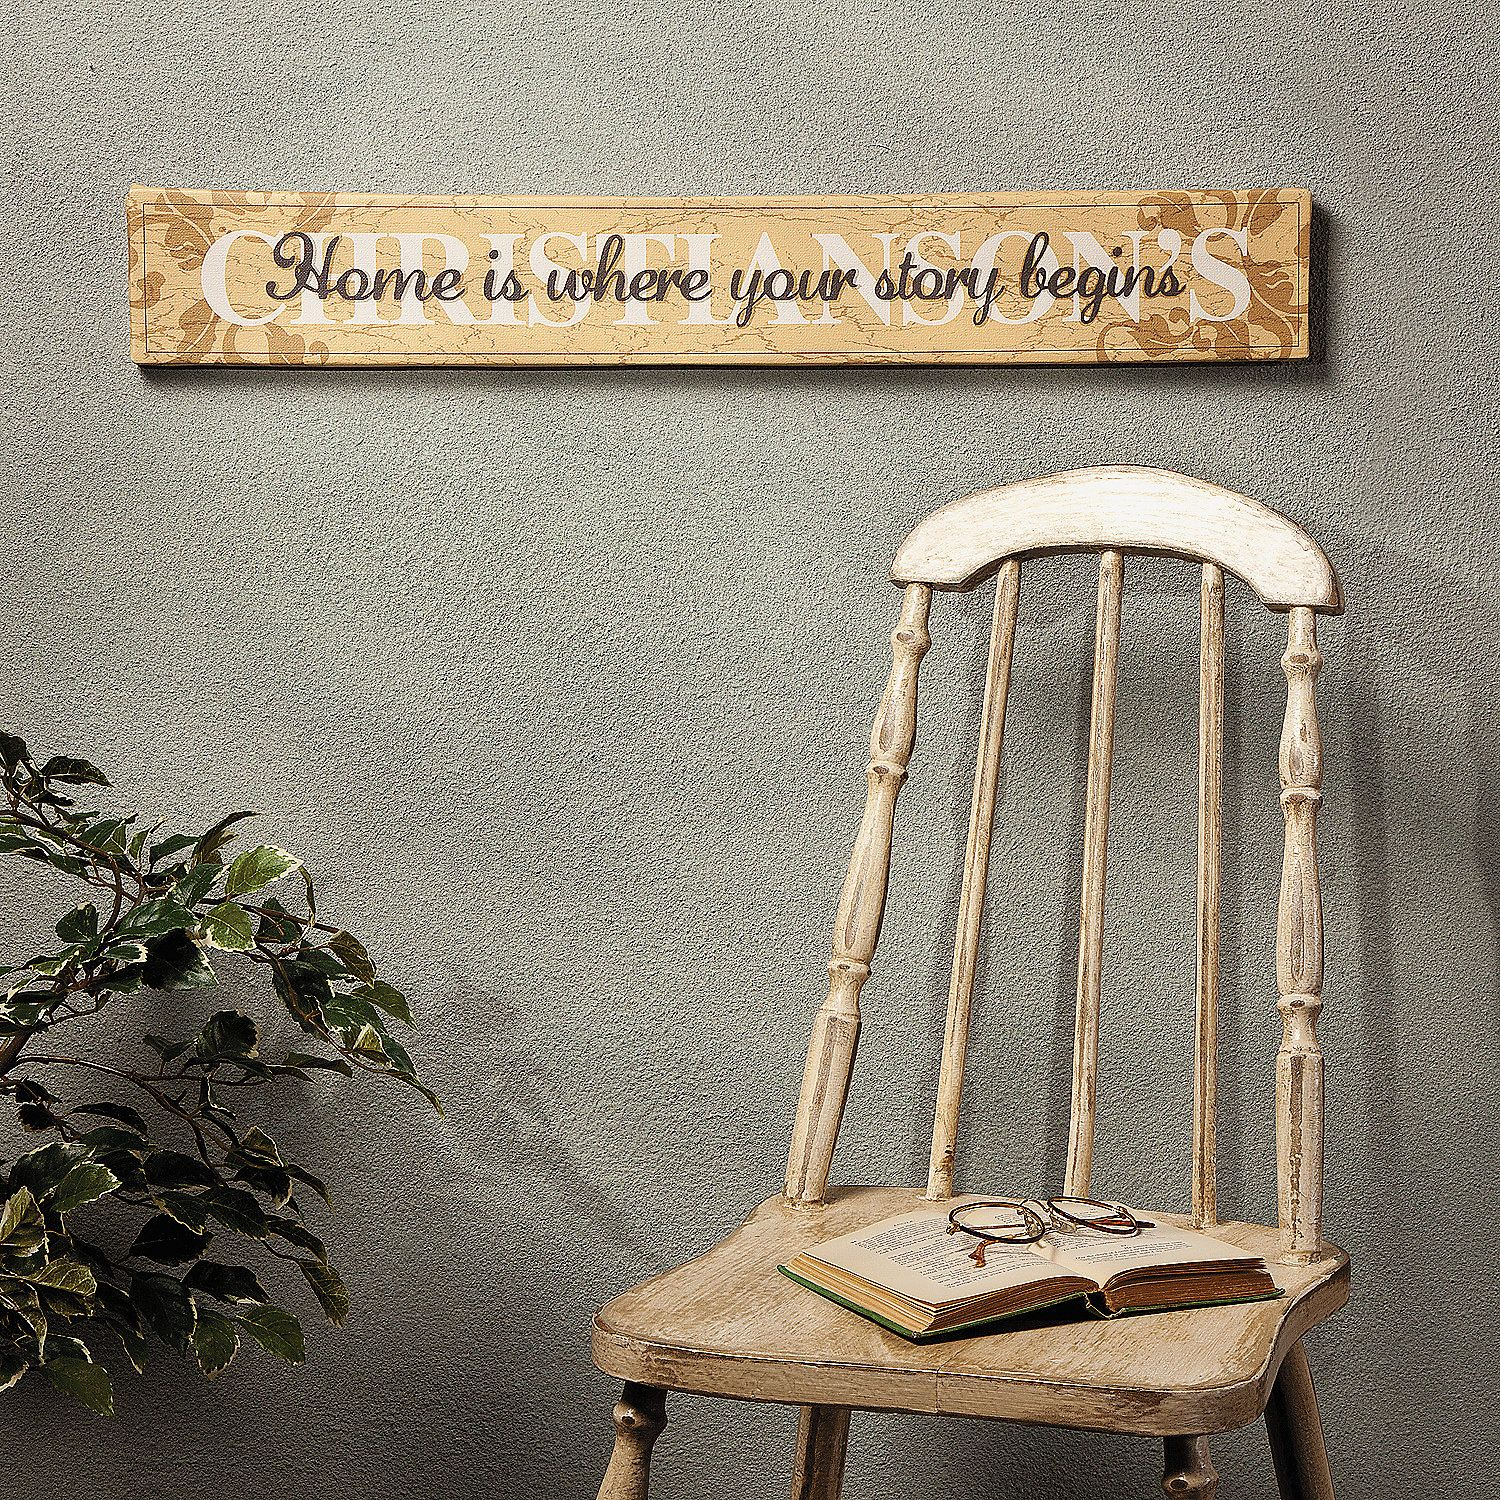 "Wall Decor Signs For Home Endearing Home Is Where Your Story Begins"" Sign  Orientaltrading  Sign Inspiration"